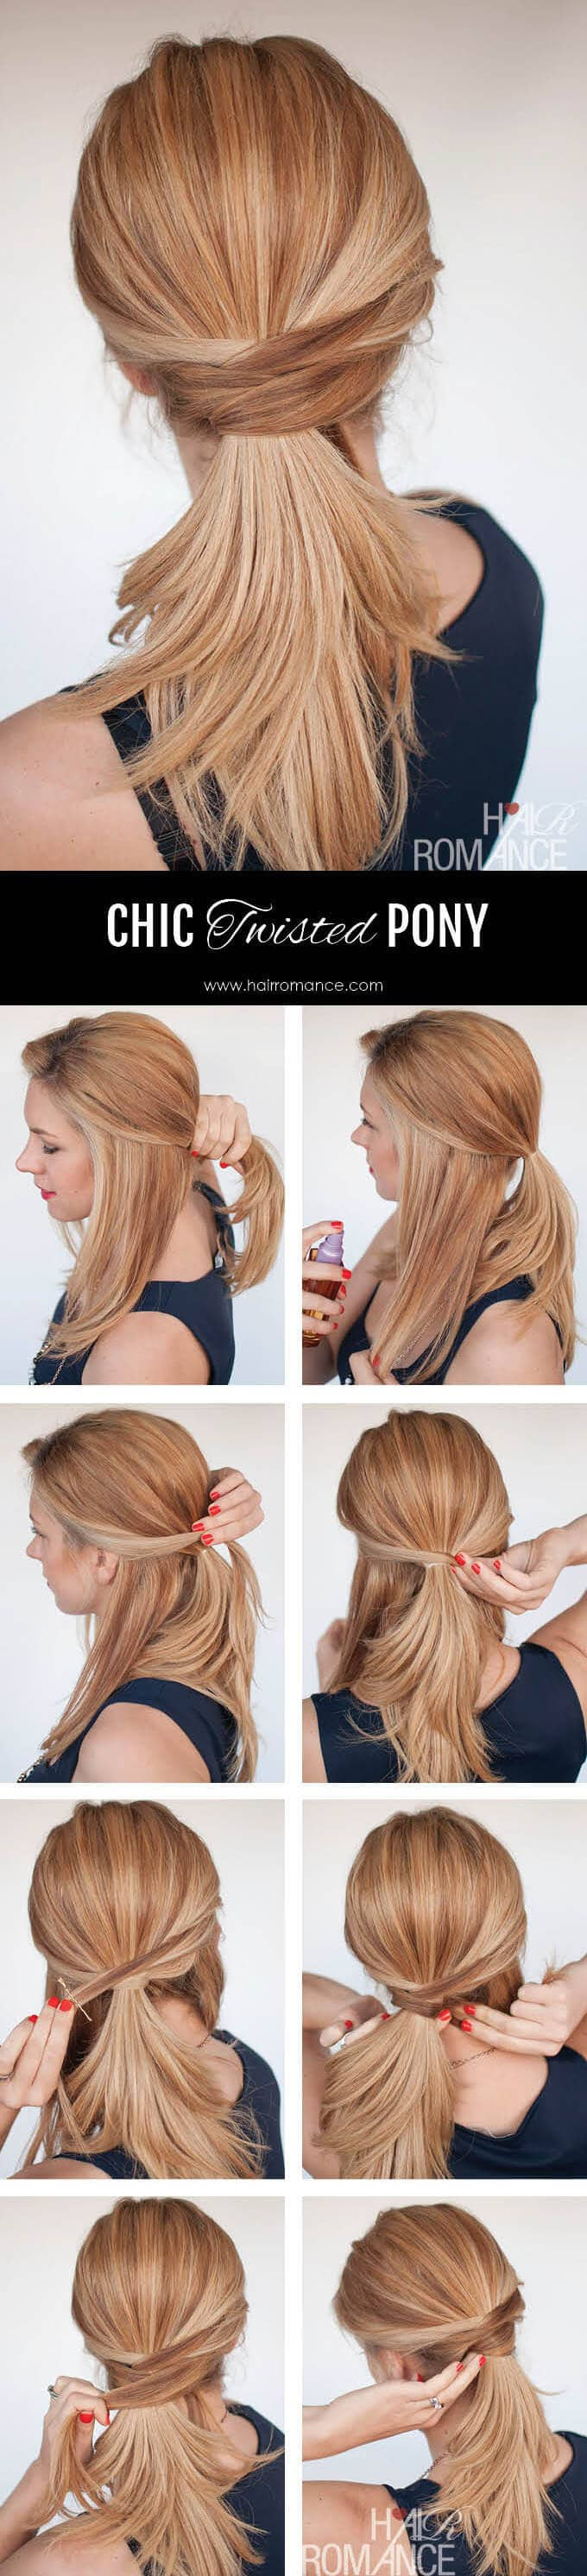 Easy Chic Twisted Pony Tutorial